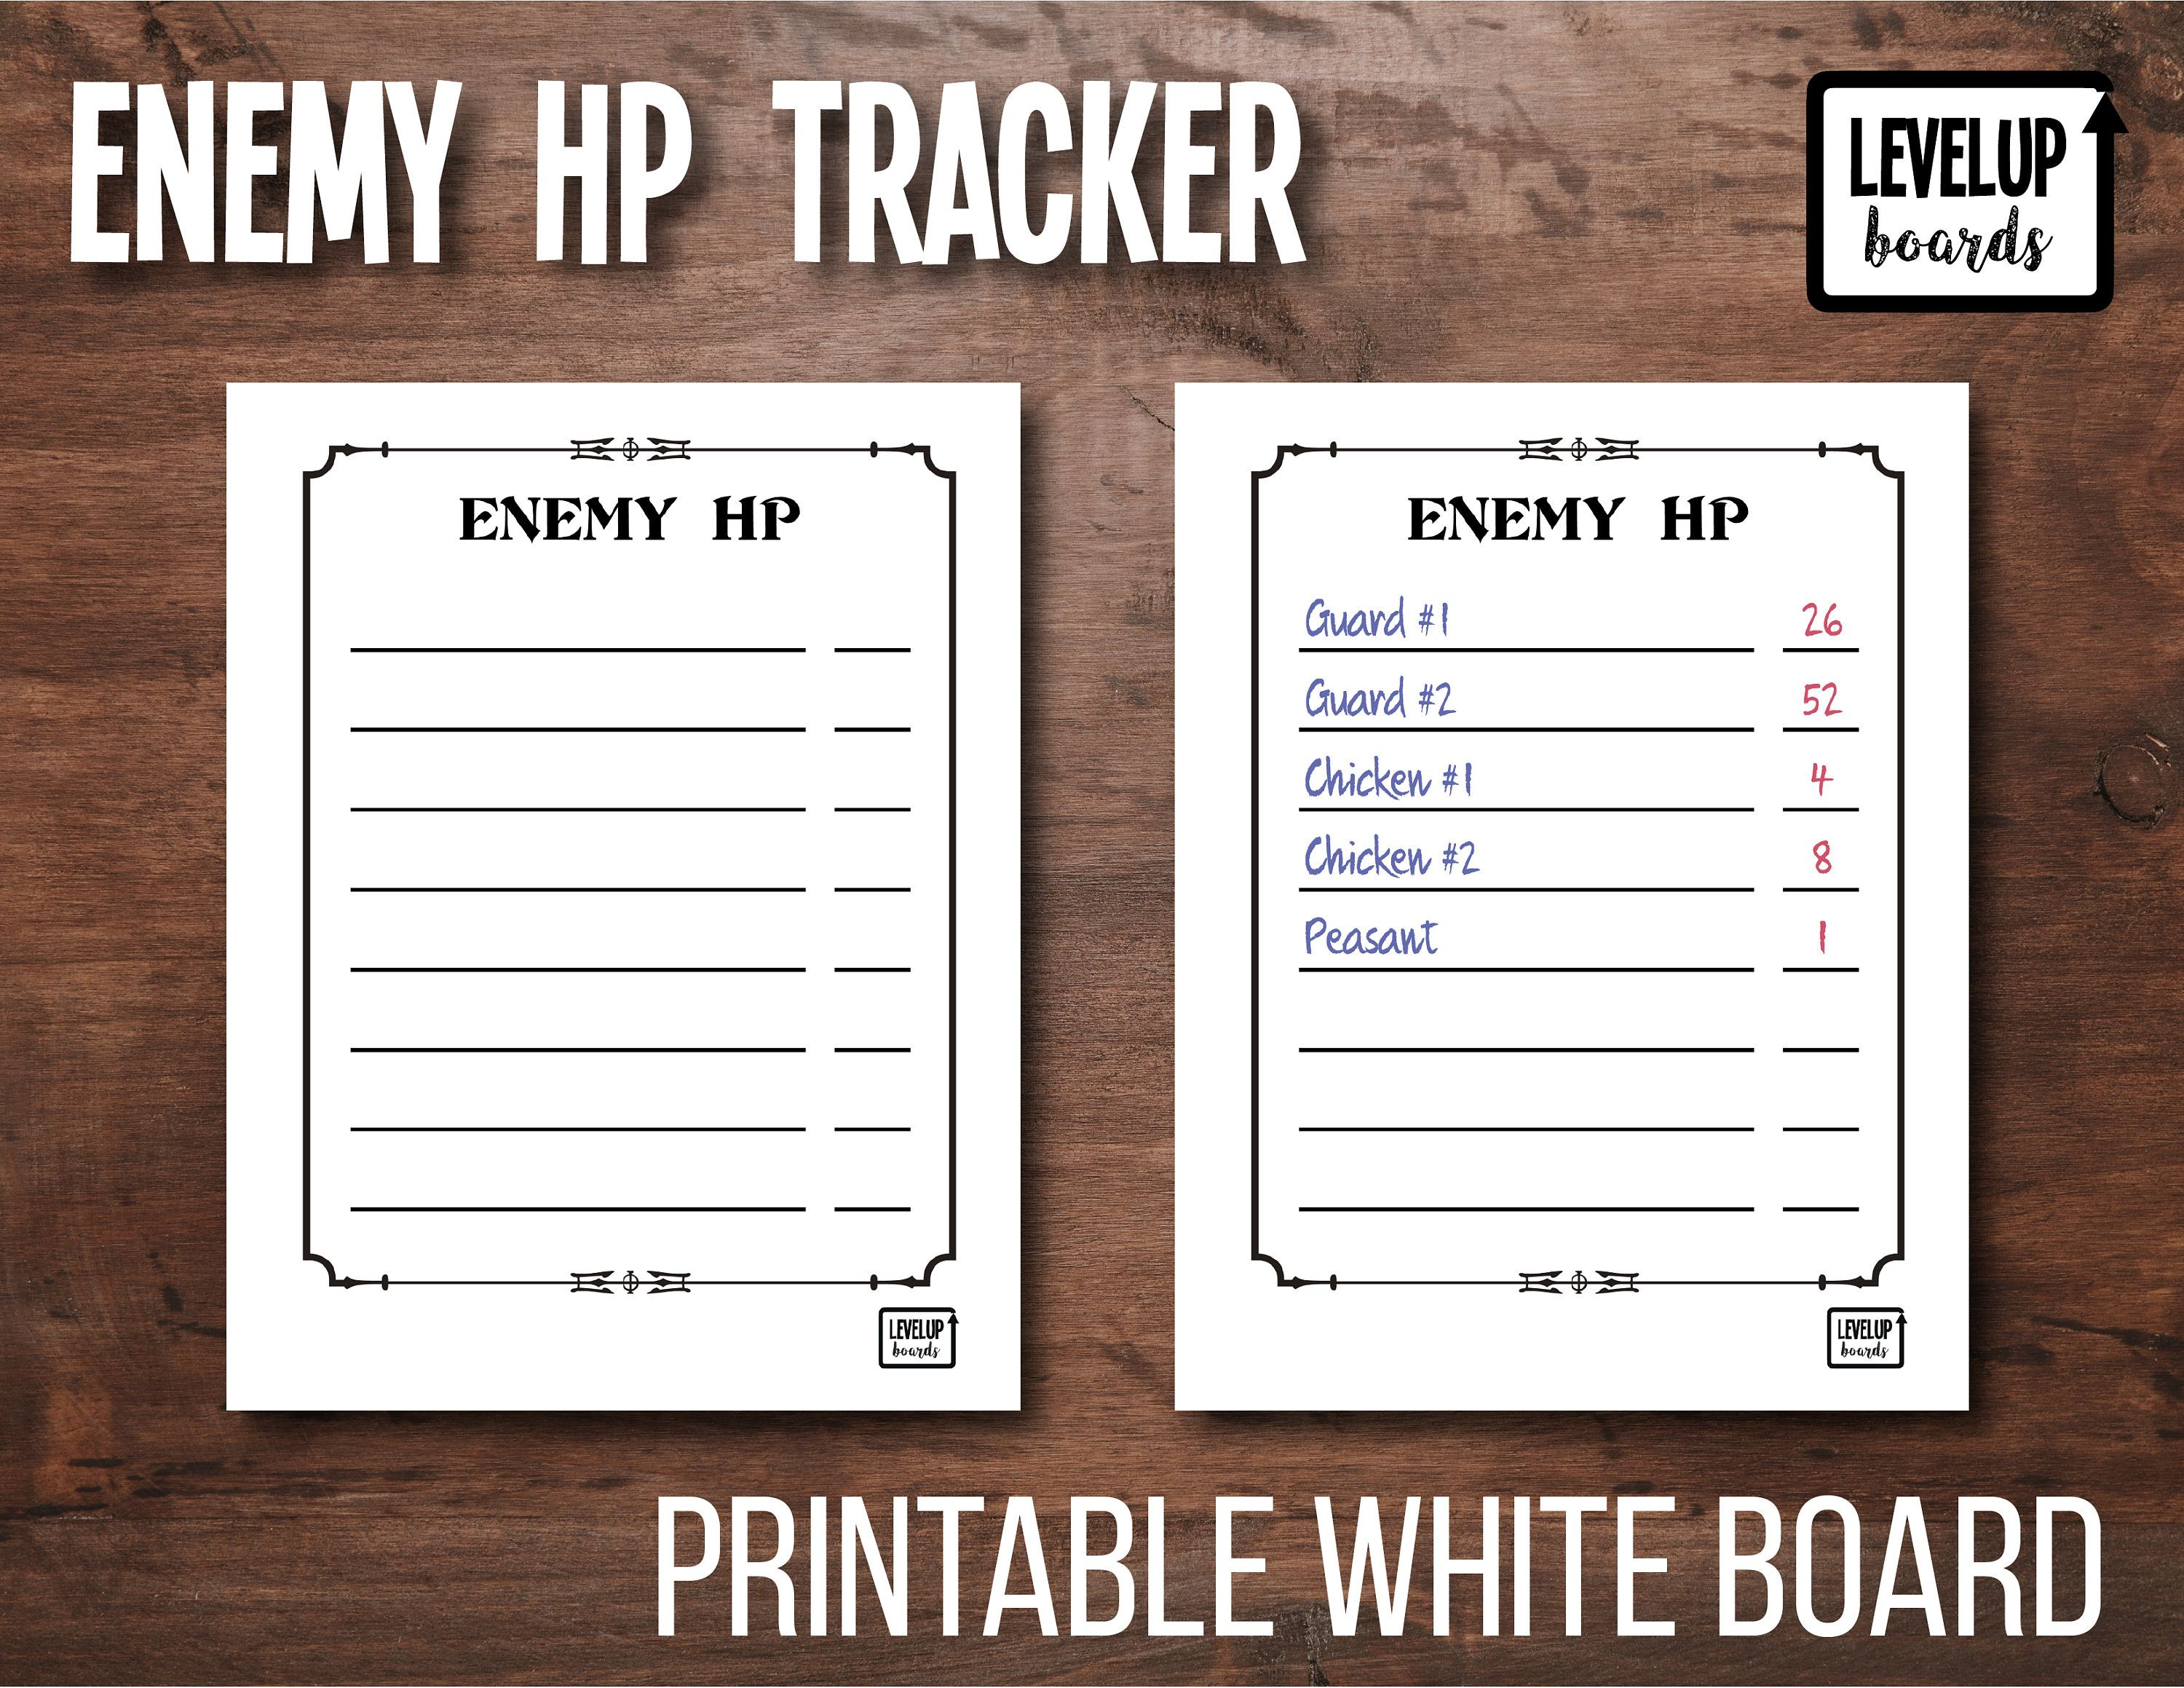 D D Enemy Combat Hp Tracker Dm Tool Printable Dry Erase Board White Board By Levelupboards On Etsy Dry Erase Board Dungeon Maps Dry Erase Markers